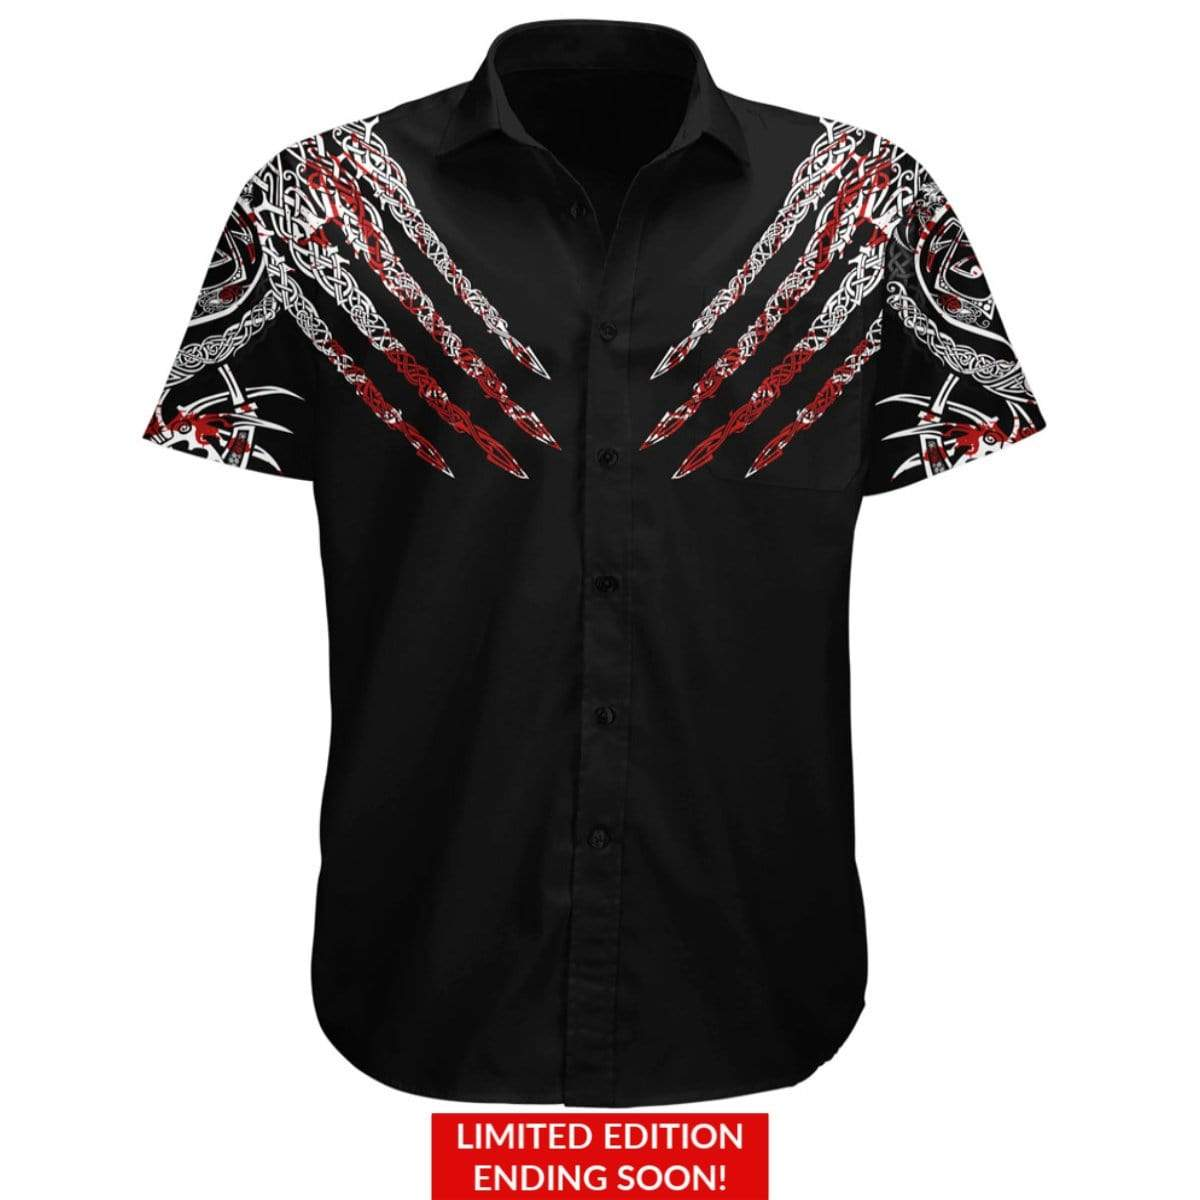 Berserker Button Up Shirt-Limited